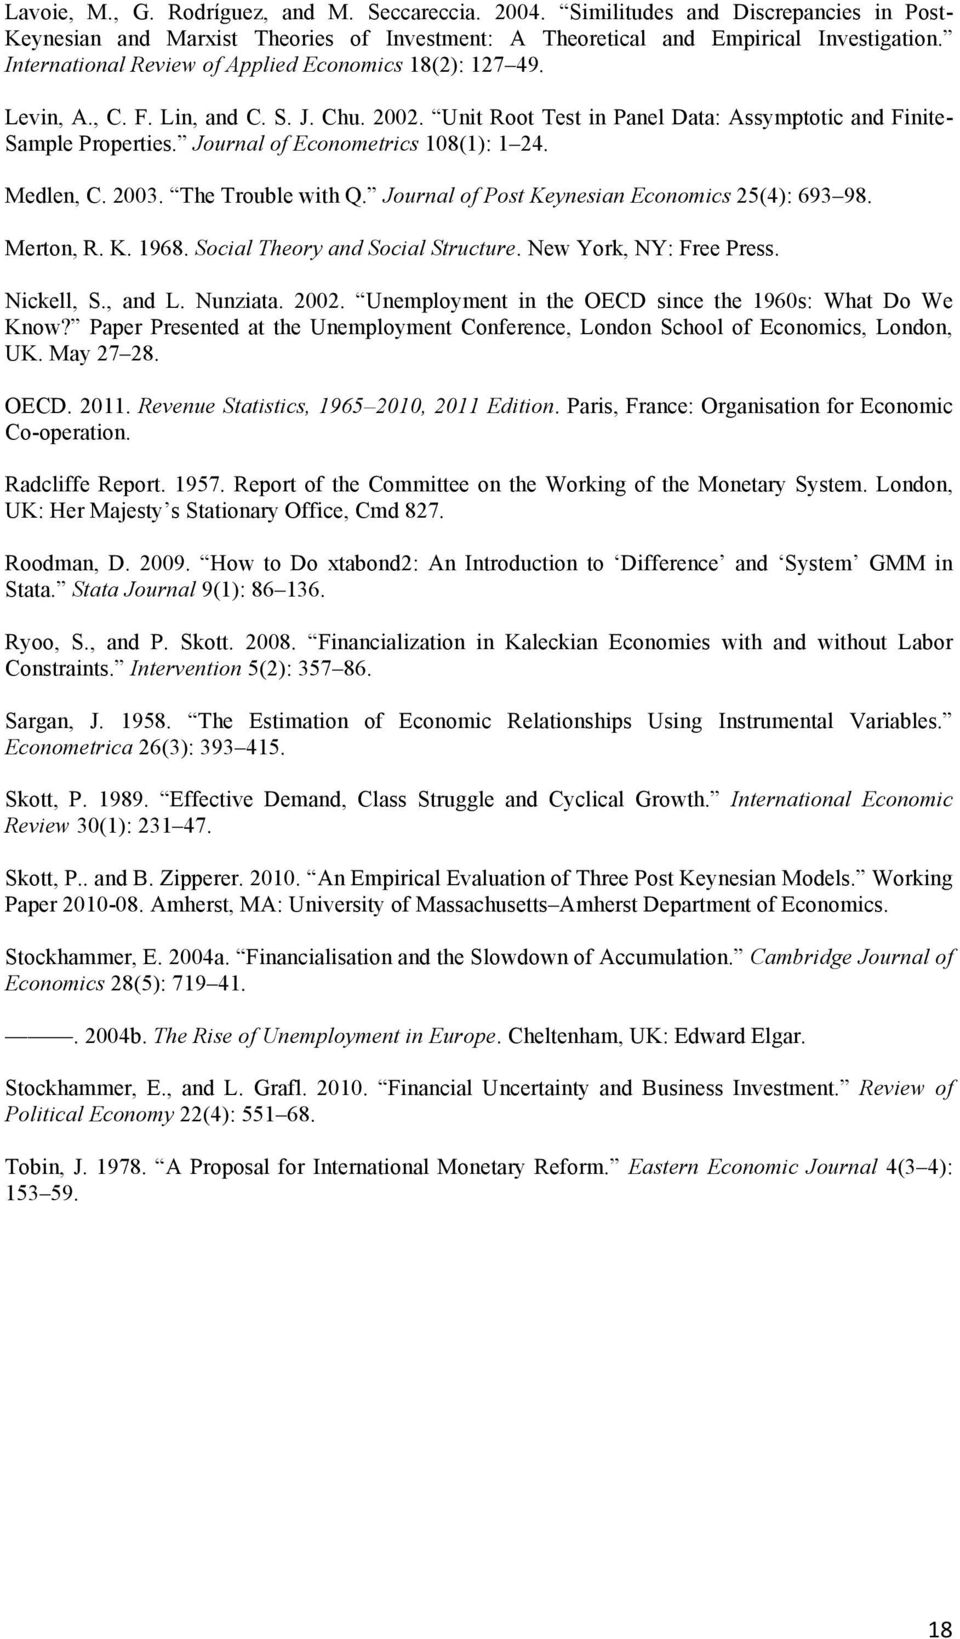 Journal of Econometrics 108(1): 1 24. Medlen, C. 2003. The Trouble with Q. Journal of Post Keynesian Economics 25(4): 693 98. Merton, R. K. 1968. Social Theory and Social Structure.